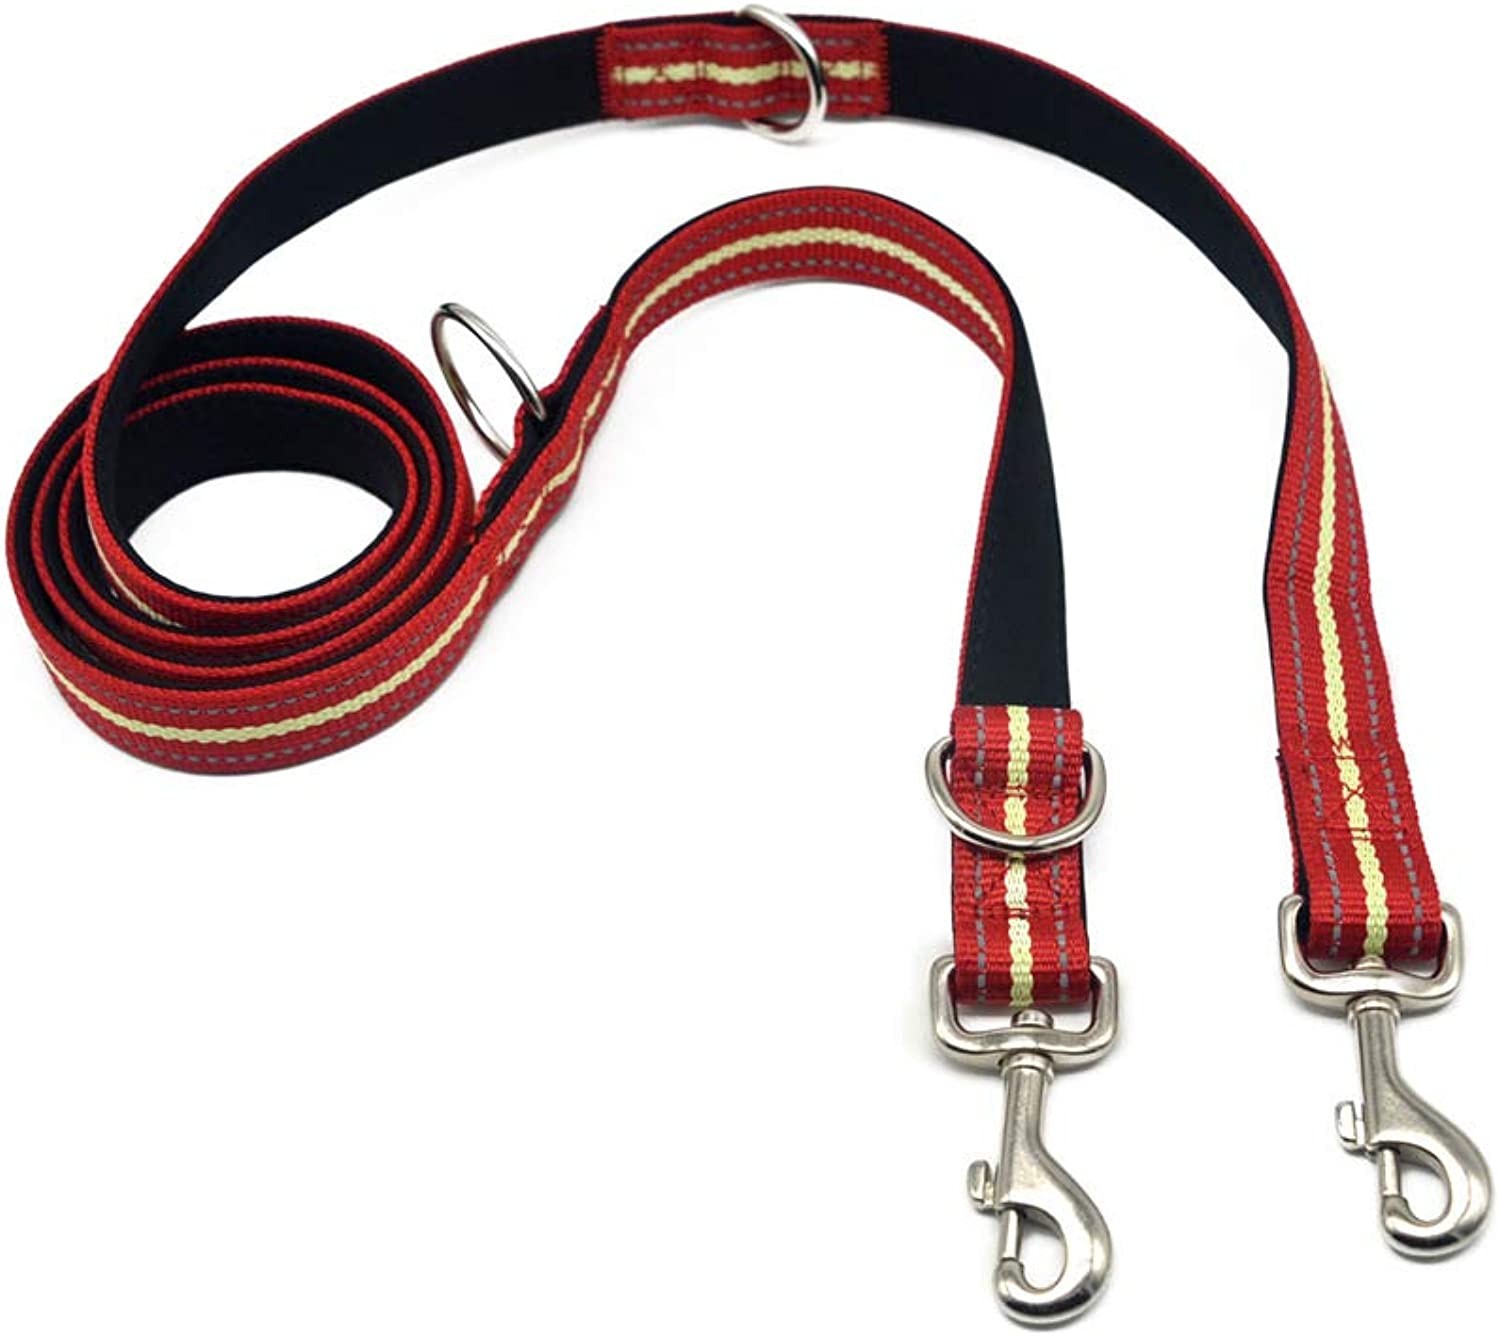 Hhxx9 Pet Traction Rope Multifunctional Dog Traction Rope Outdoor Sports,Red,200X2.5Cm